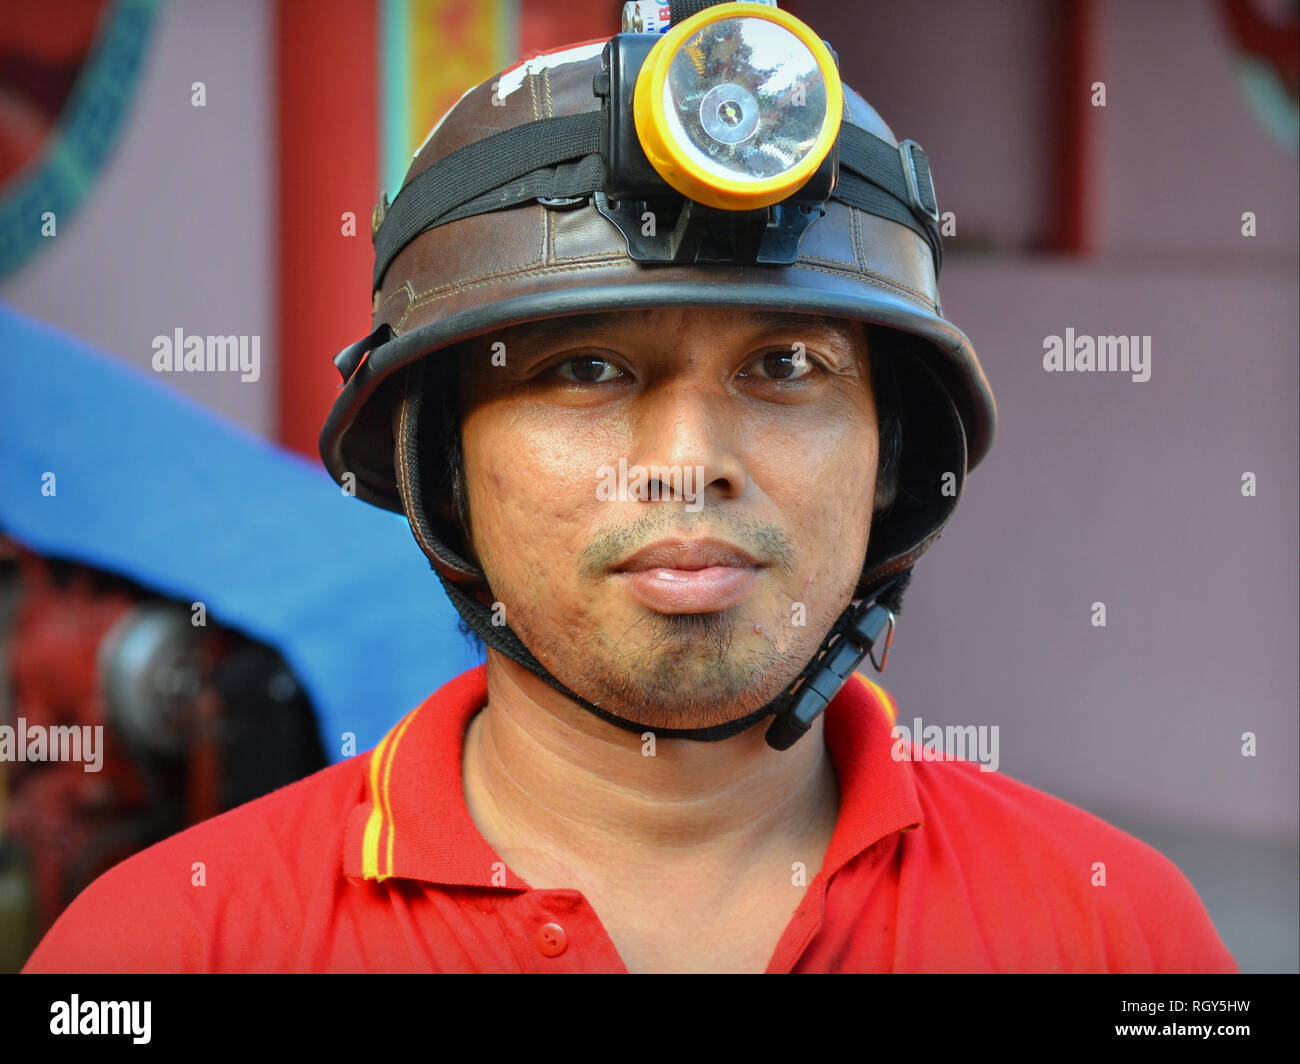 Indonesian on-call firefighter wears an improvised firefighter's helmet with attached DIY helmet lamp. - Stock Image